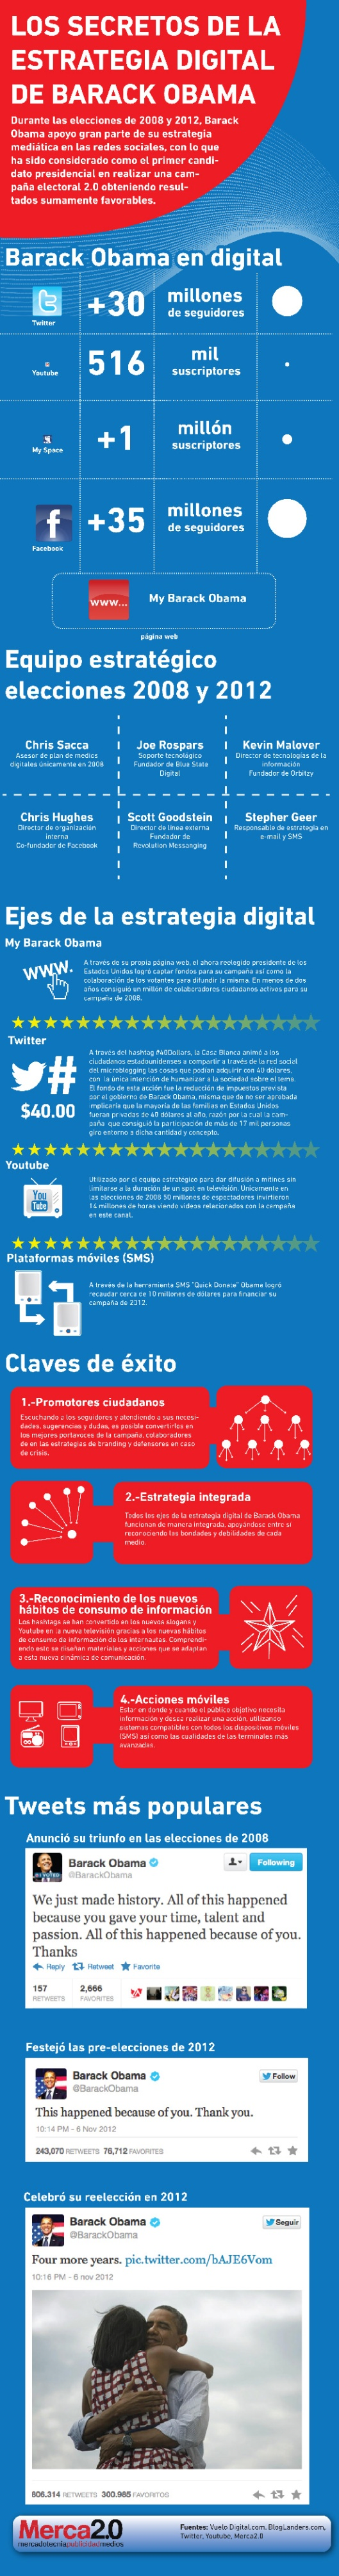 infografia_los_secretos_de_la_estrategia_digital_de_obama